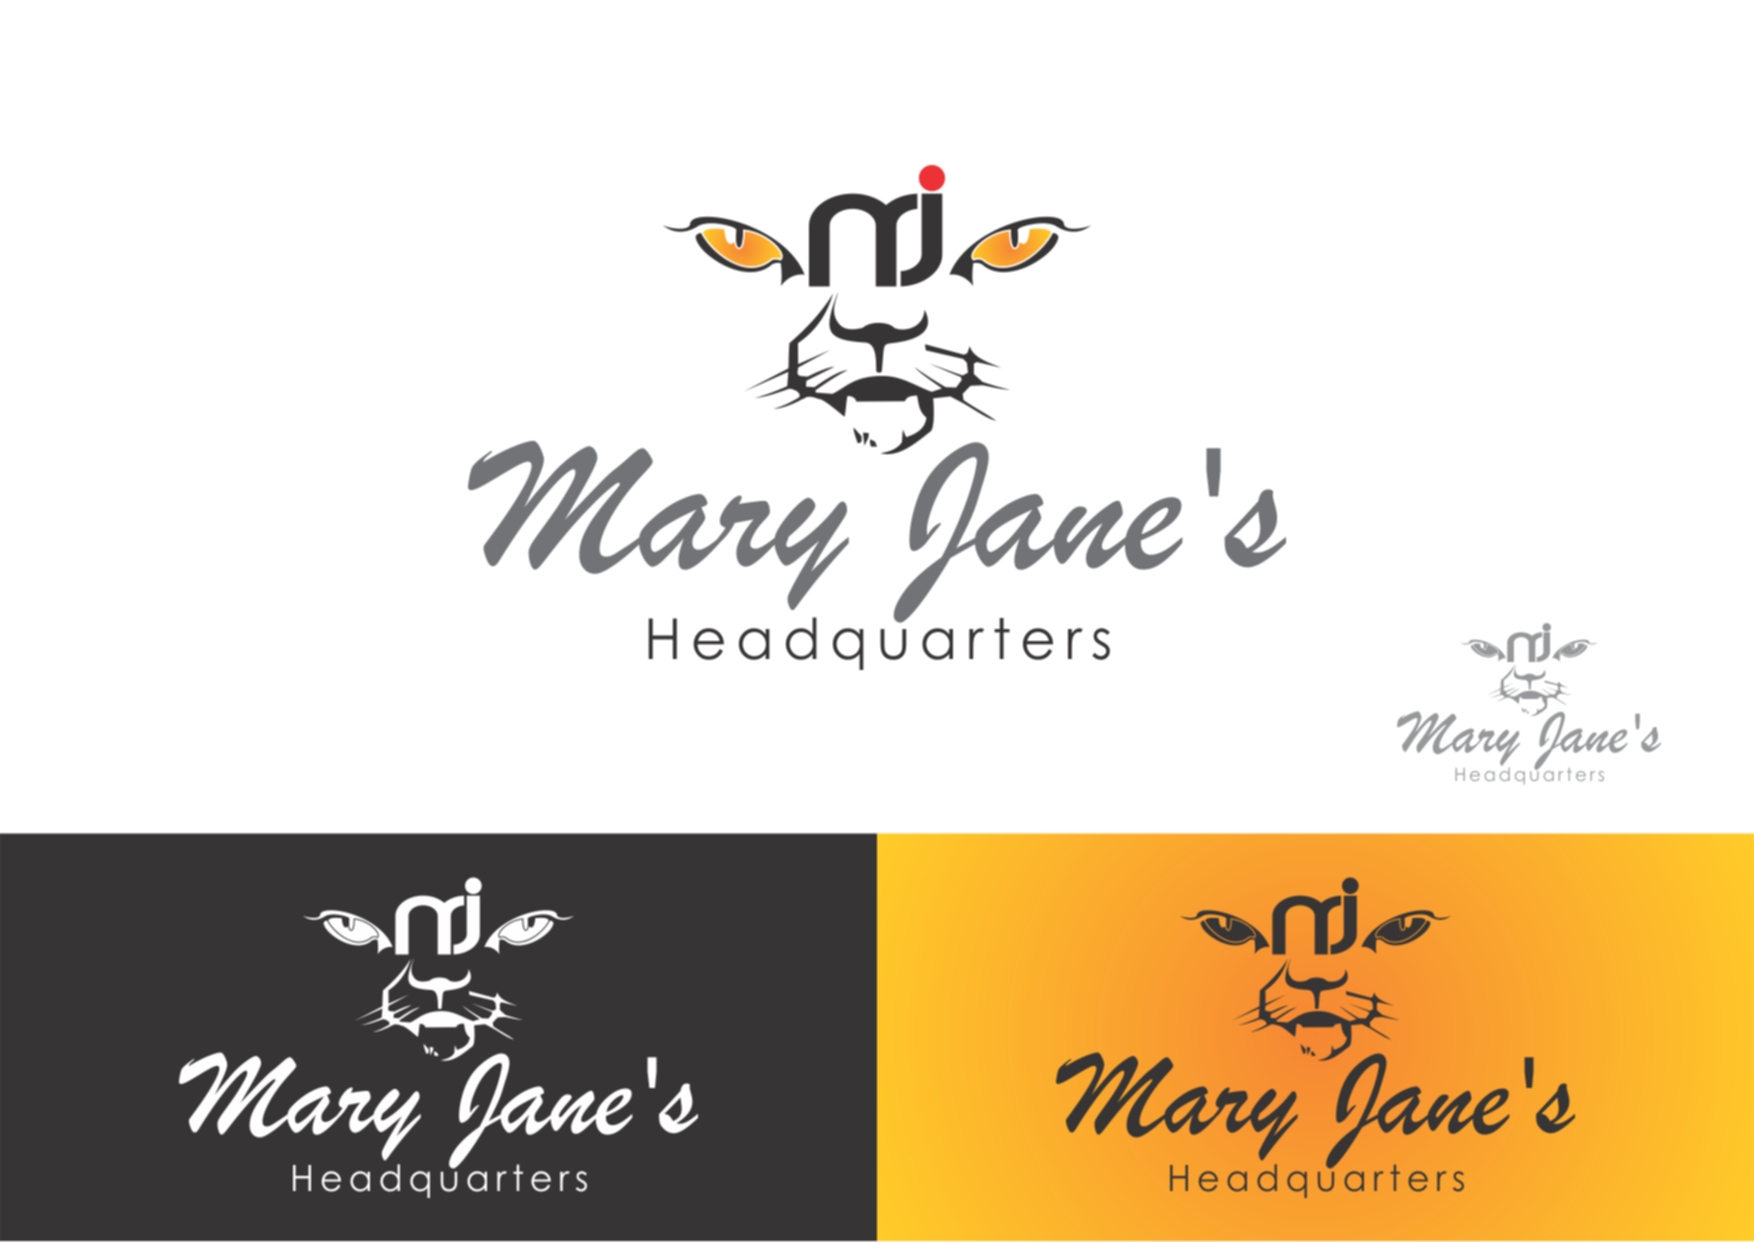 Logo Design by Private User - Entry No. 10 in the Logo Design Contest Mary Jane's Headquarters Logo Design.